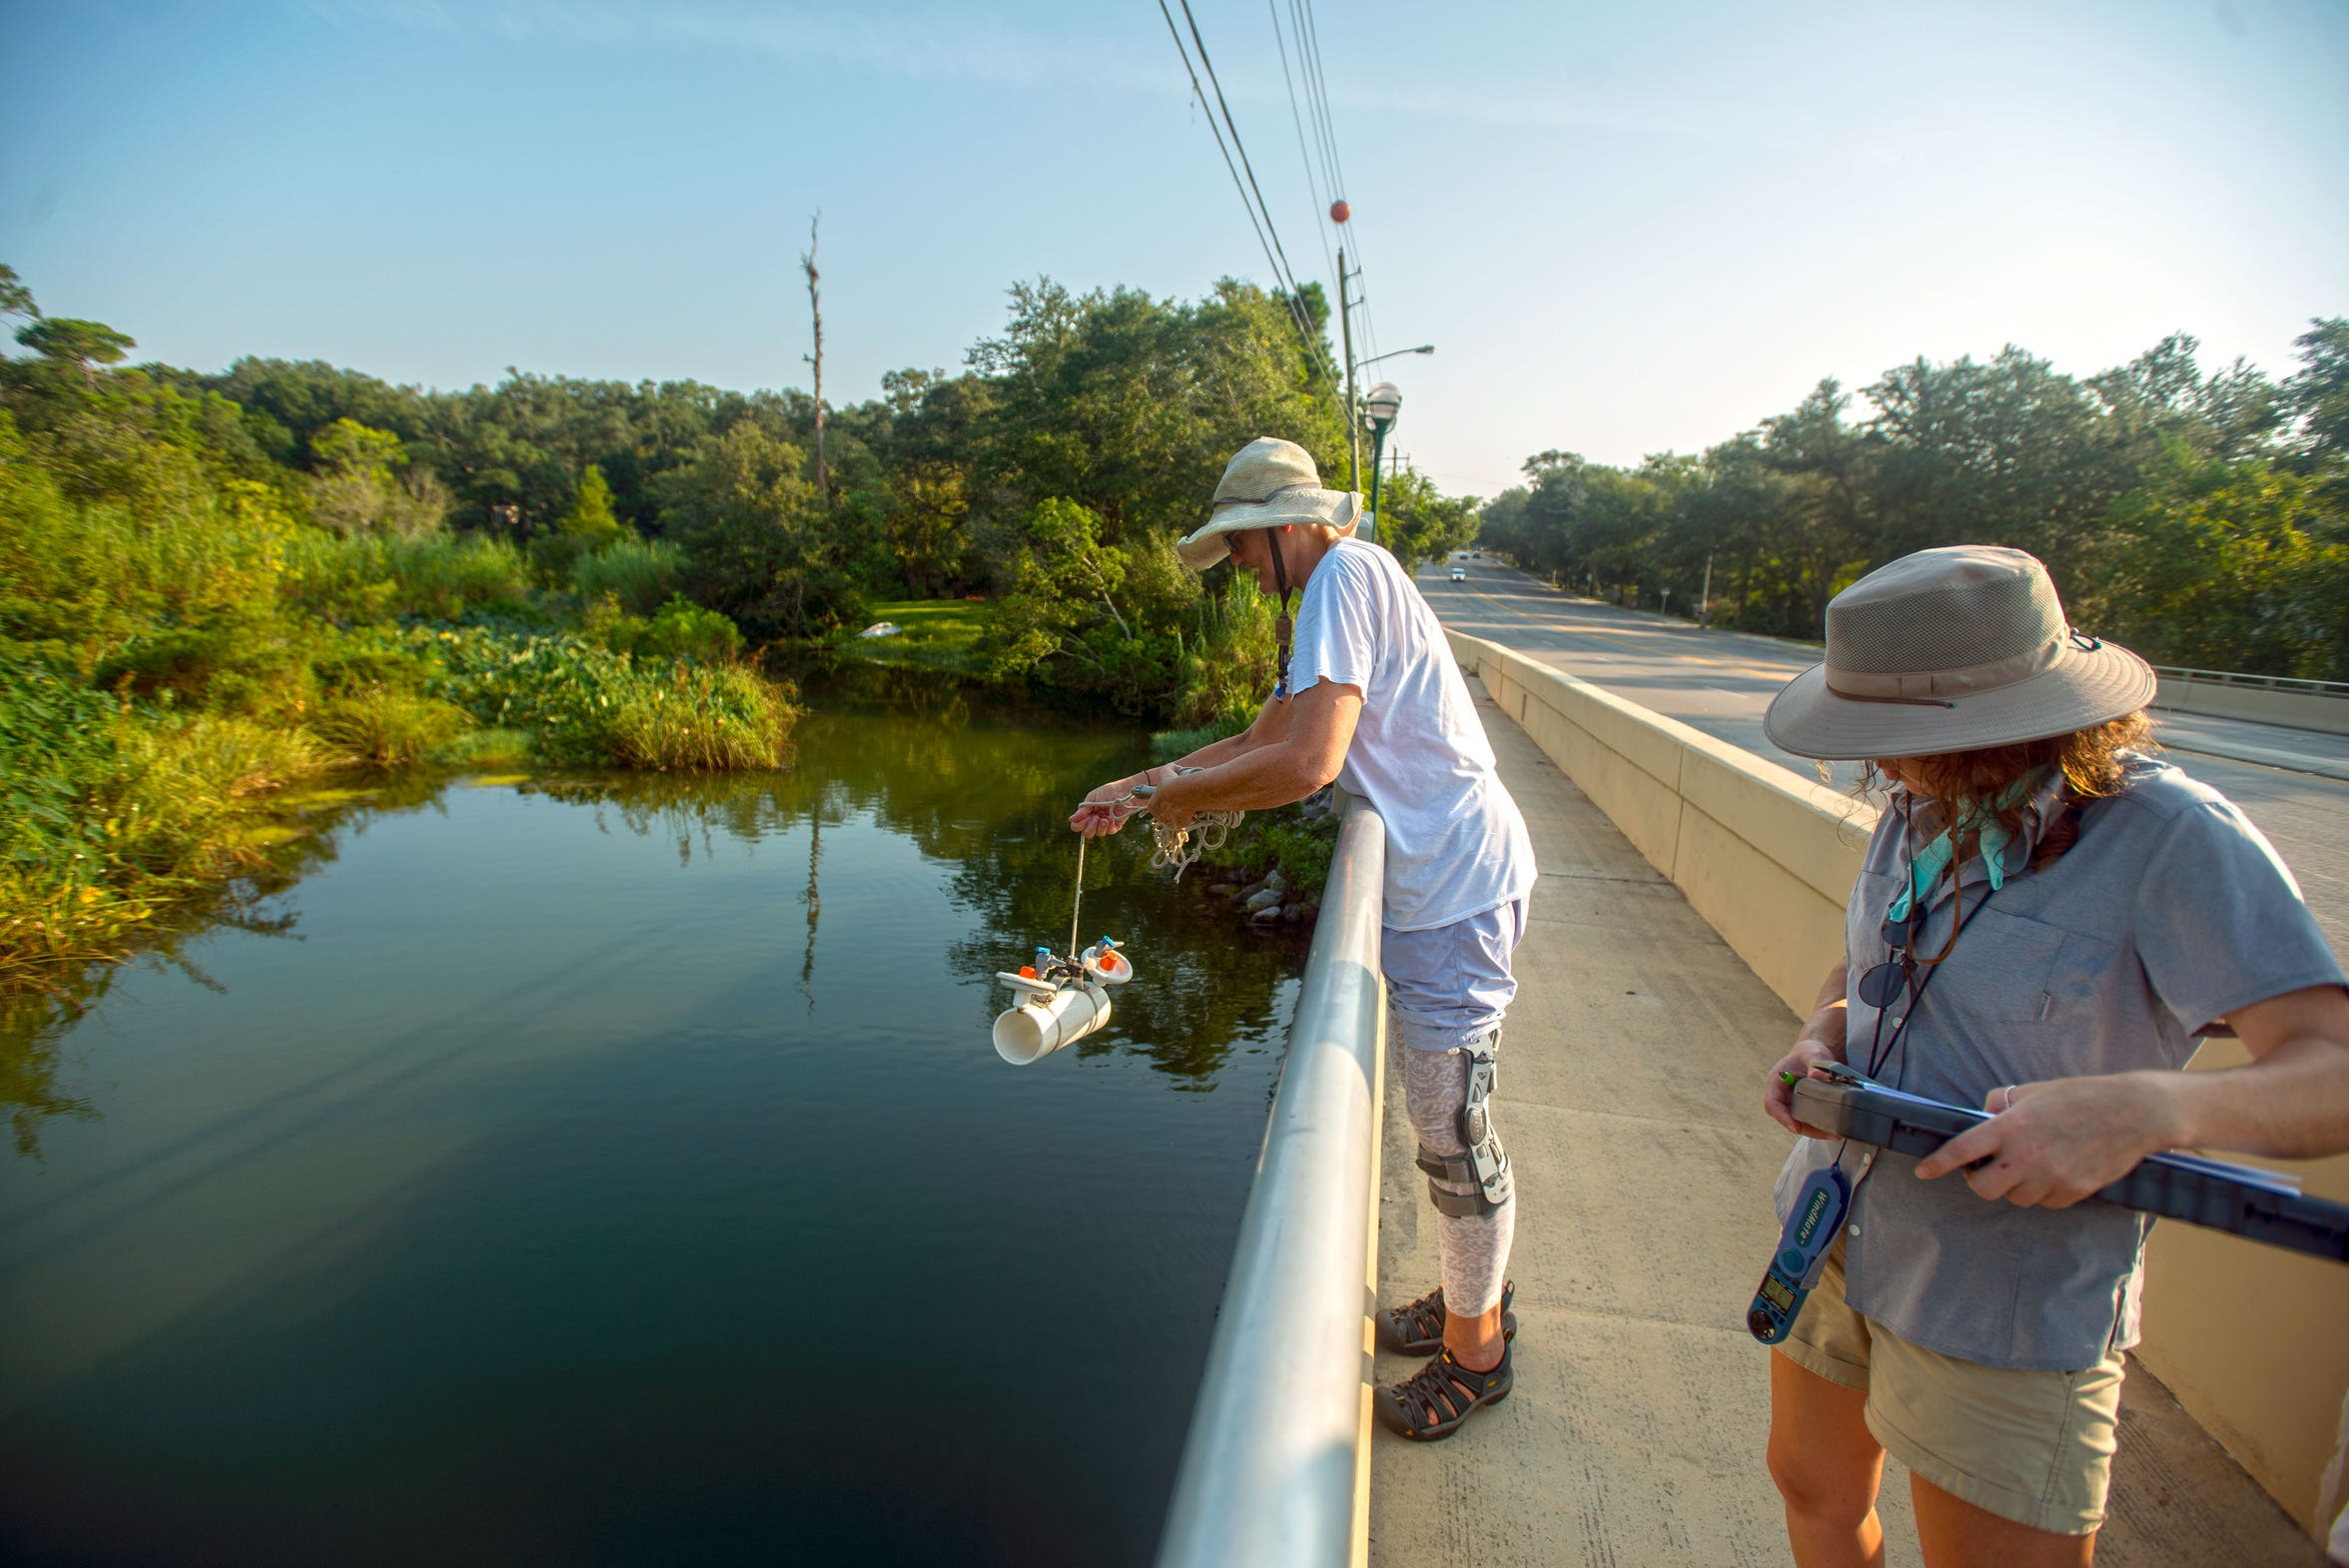 Barbara Albrecht with the Bream Fishermen Association and University of West Florida student volunteer Jessica Baker, right, take water samples off of 12th Avenue on Sept. 8, 2019.